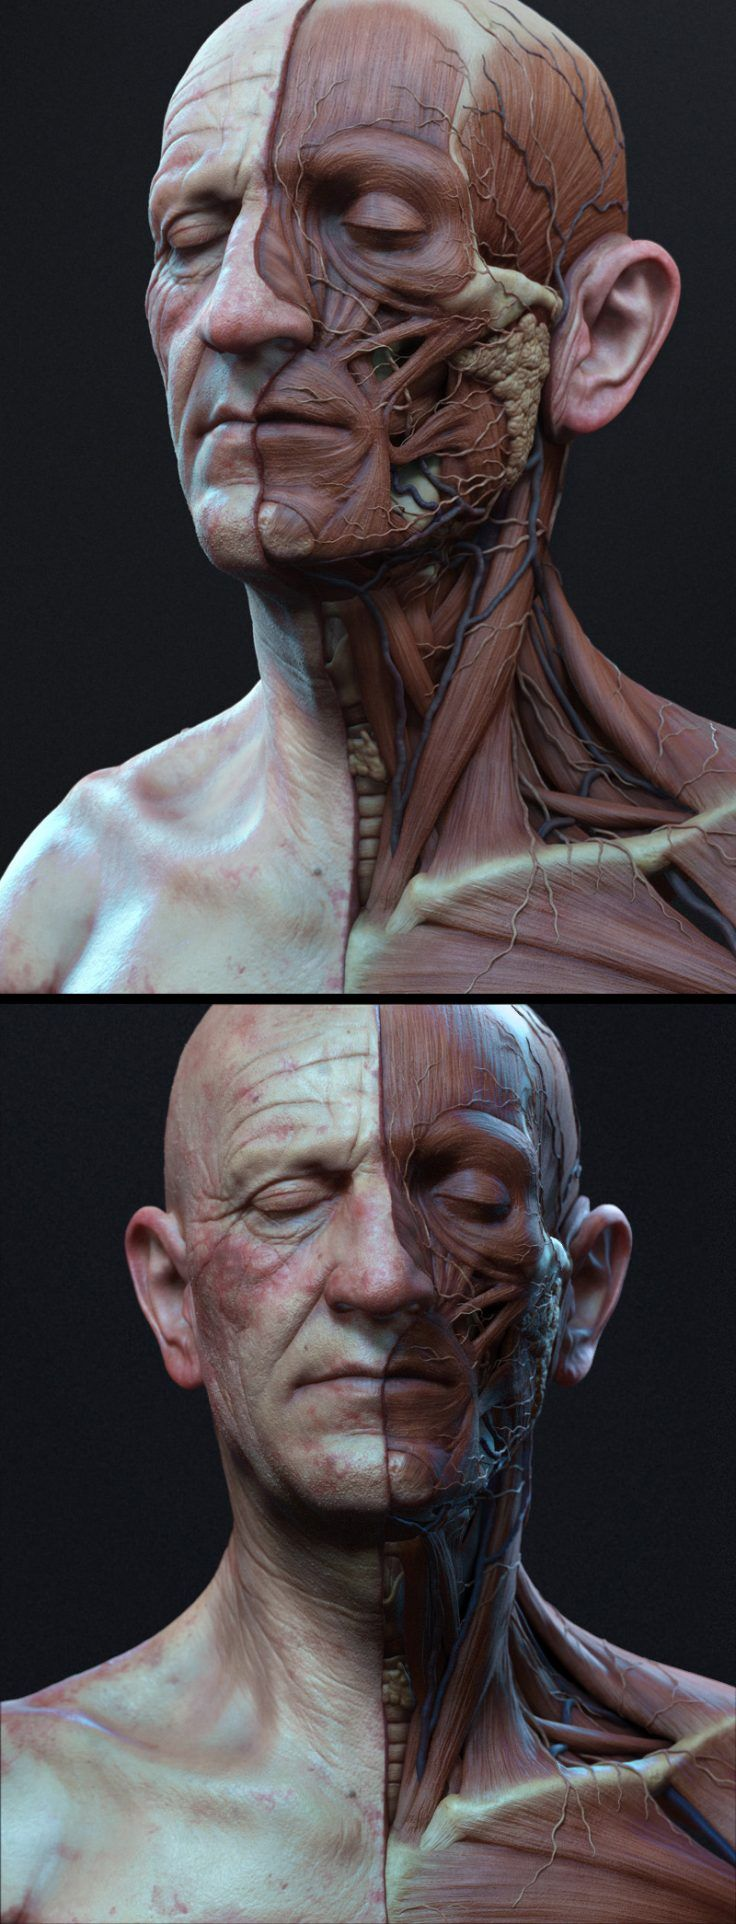 Ecorche by Adam Skutt 800px X 2091px